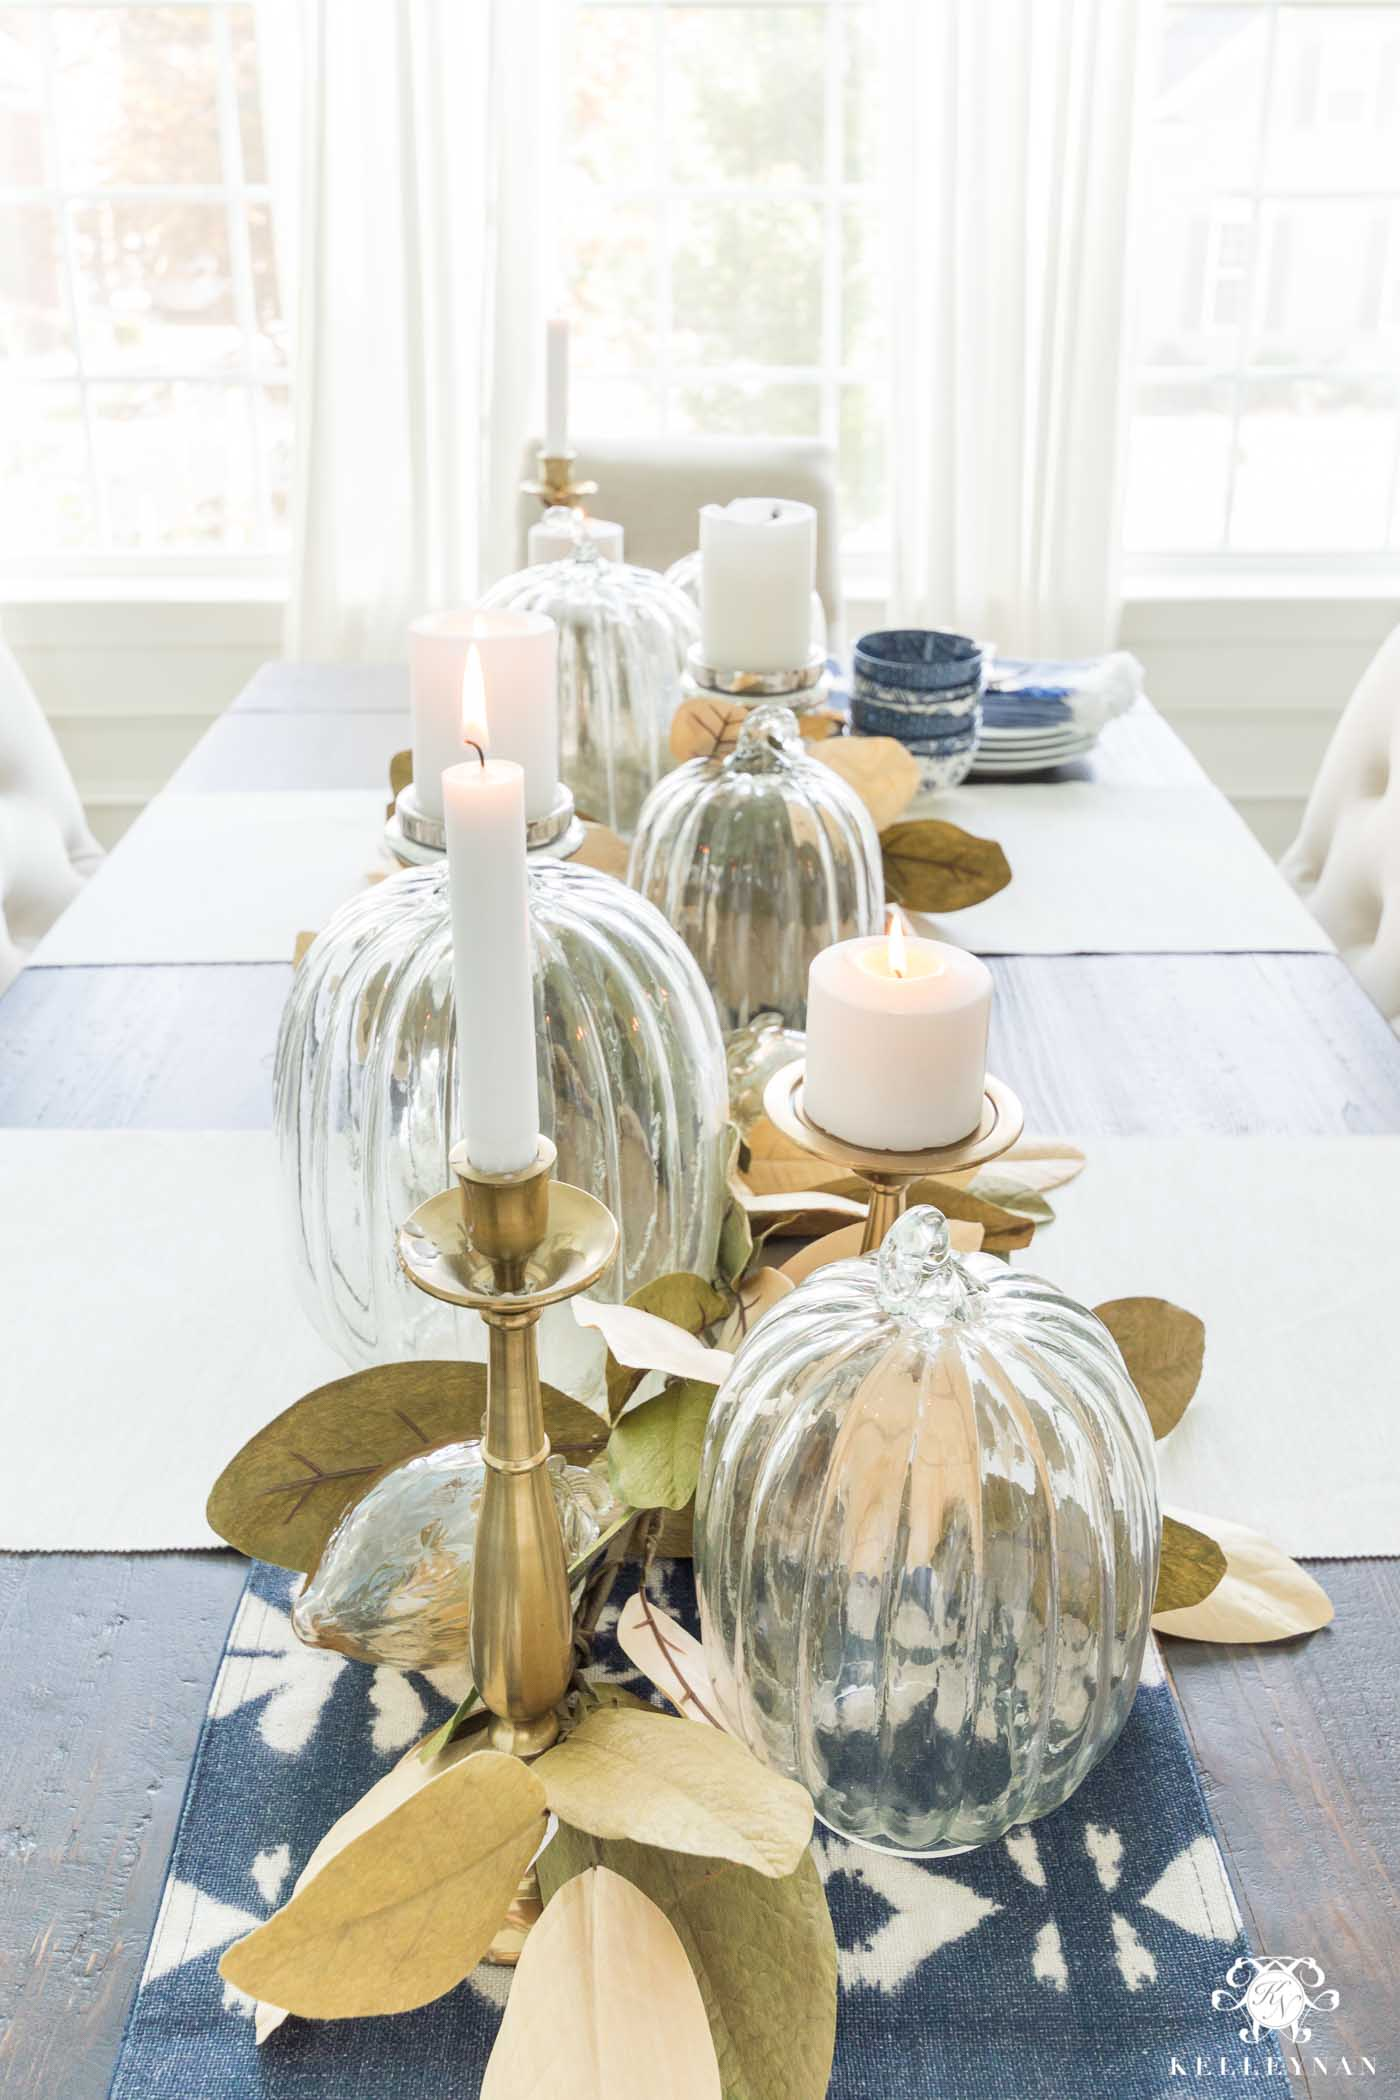 Fall Tablescape Ideas with Pumpkin and Leaf Garland Centerpiece